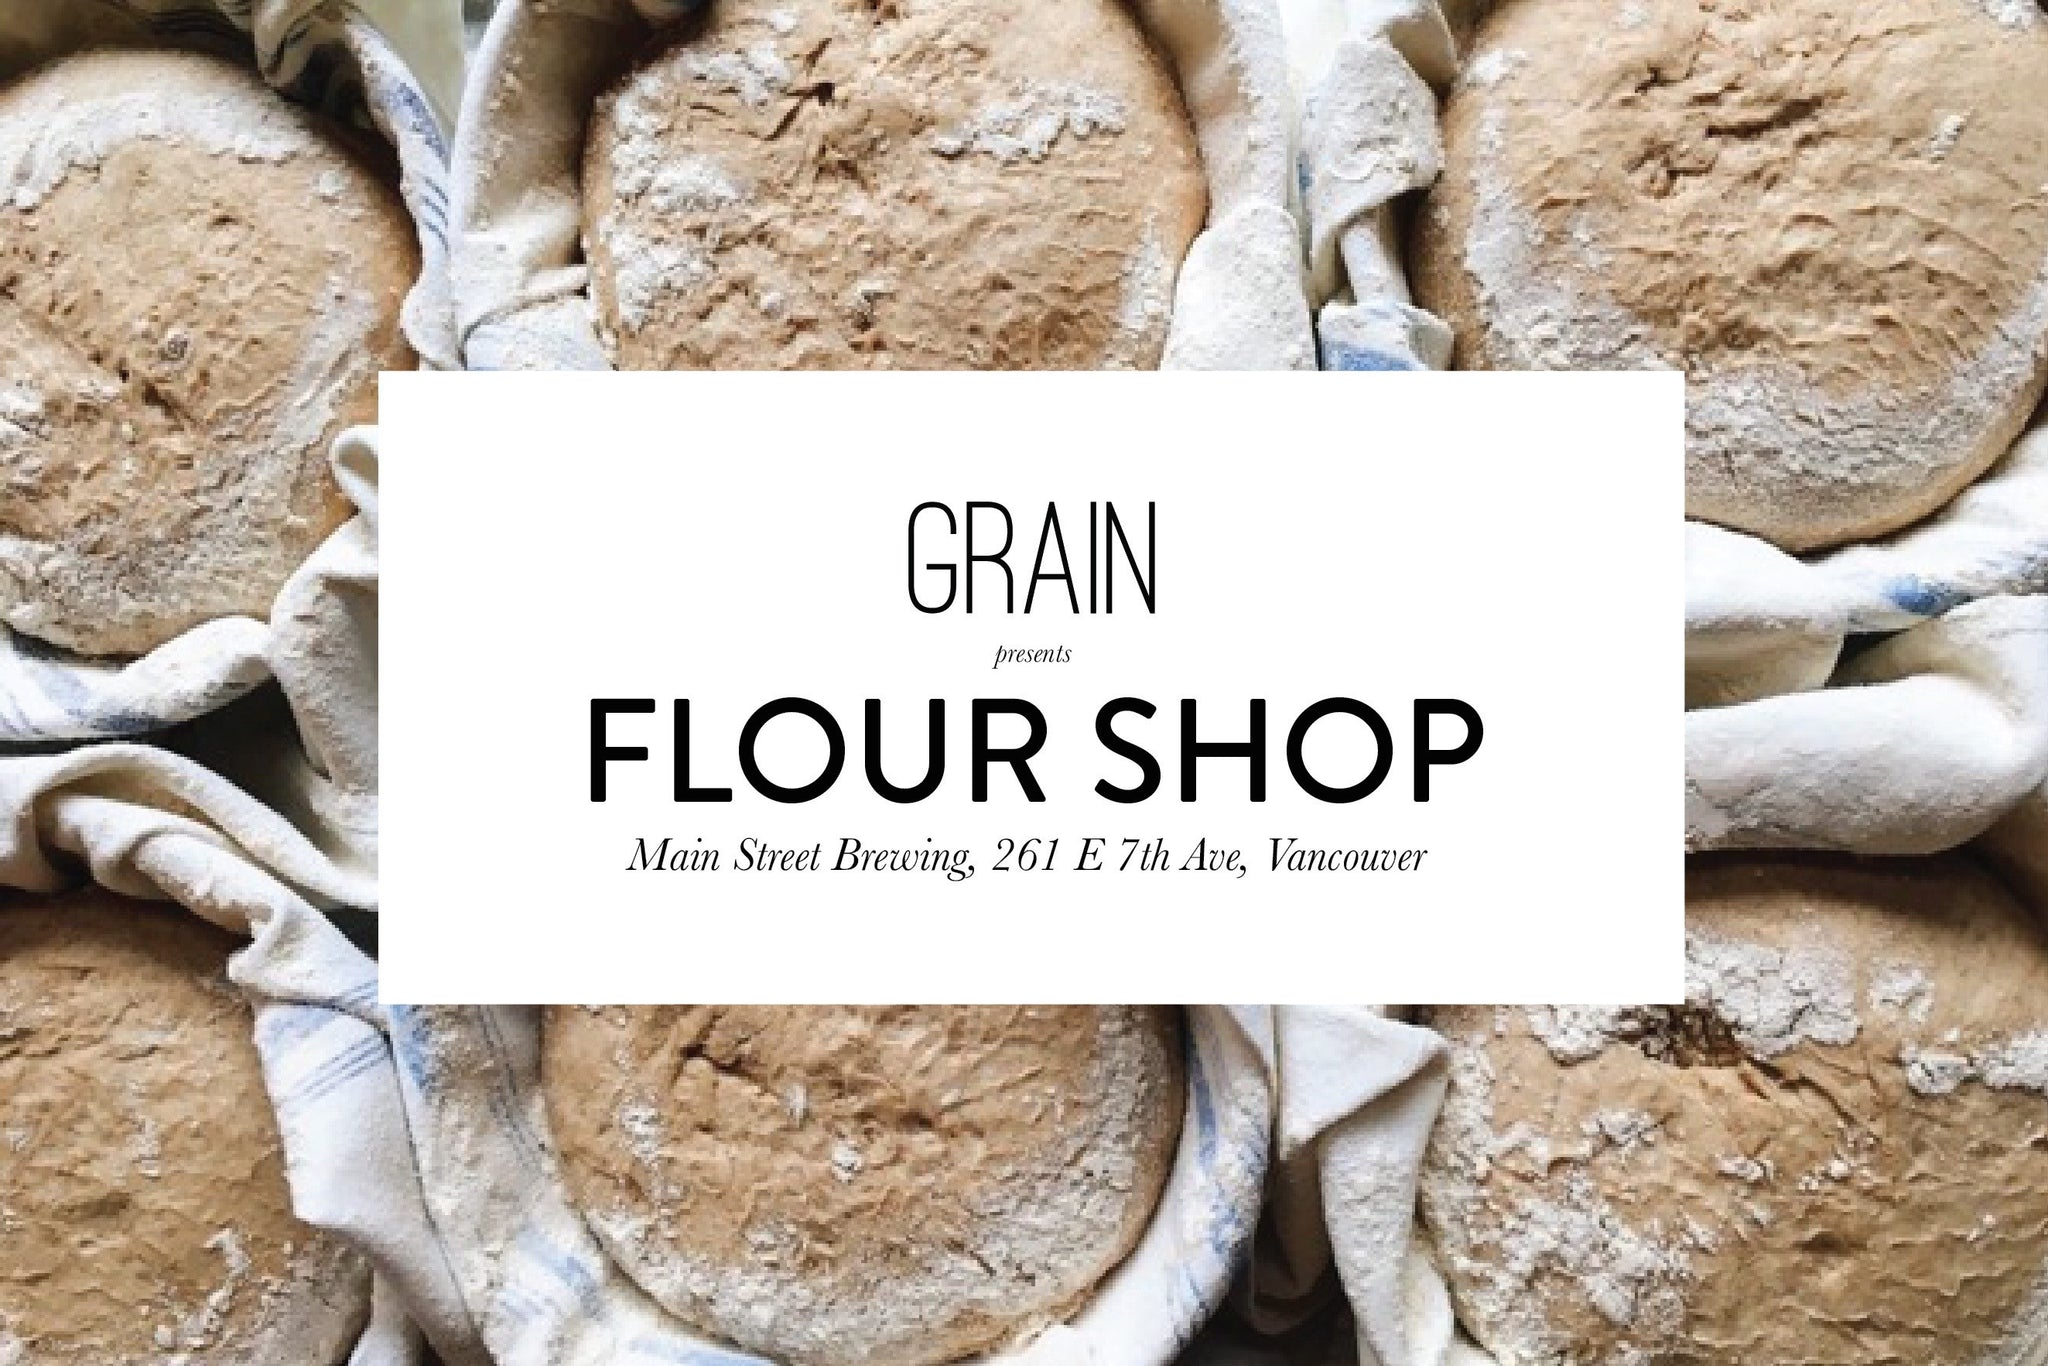 Pre-order for FLOUR SHOP July 22 & WIN $50 at Cook Culture!